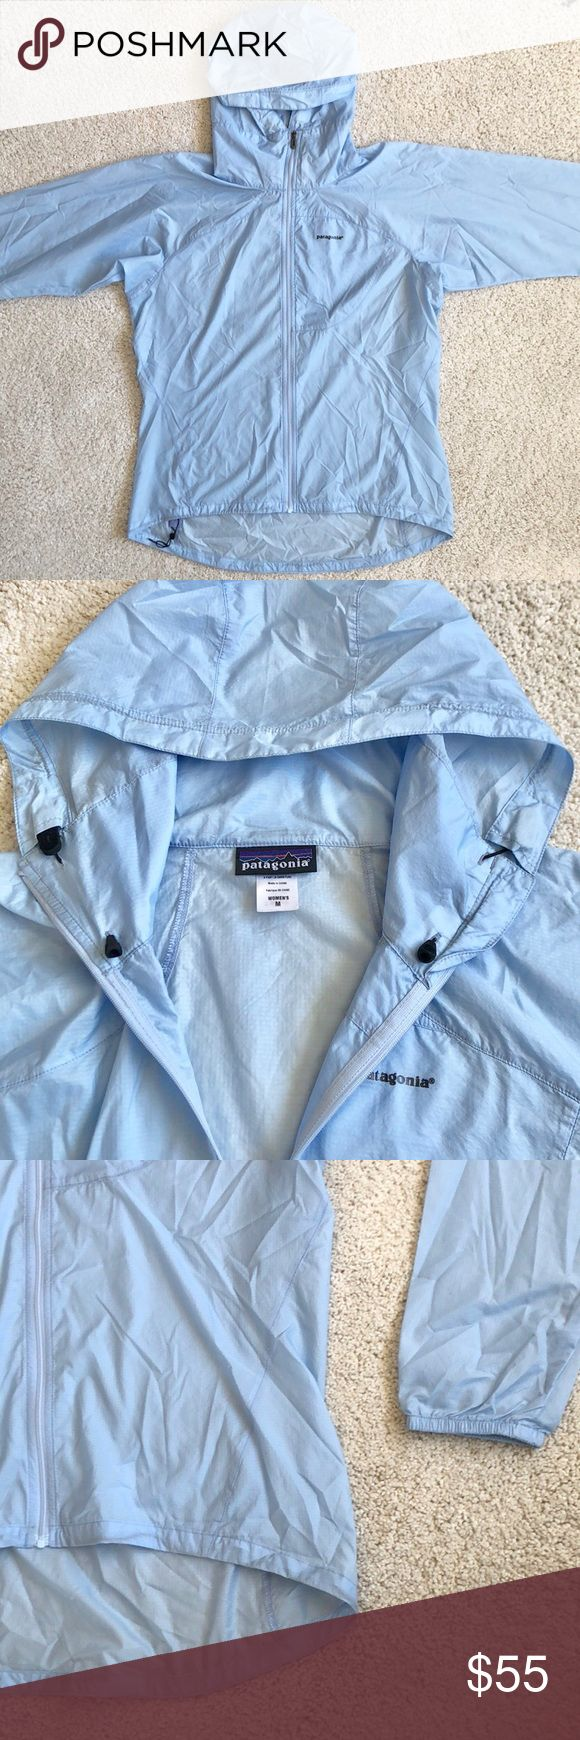 Patagonia Women's Houdini Jacket Patagonia Houdini jacket  Women's Medium Baby blue 💧💨 Featherweight 100% nylon ripstop with a Durable Water Repellent finish Zippered chest pocket converts to stuffsack with a reinforced carabiner clip-in loop Hood adjusts in one pull, won't block peripheral vision Durable half-elastic cuffs; drawcord hem Reflective logo on left chest and center-back neck Pet and smoke free home Excellent used condition - like new! Patagonia Jackets & Coats